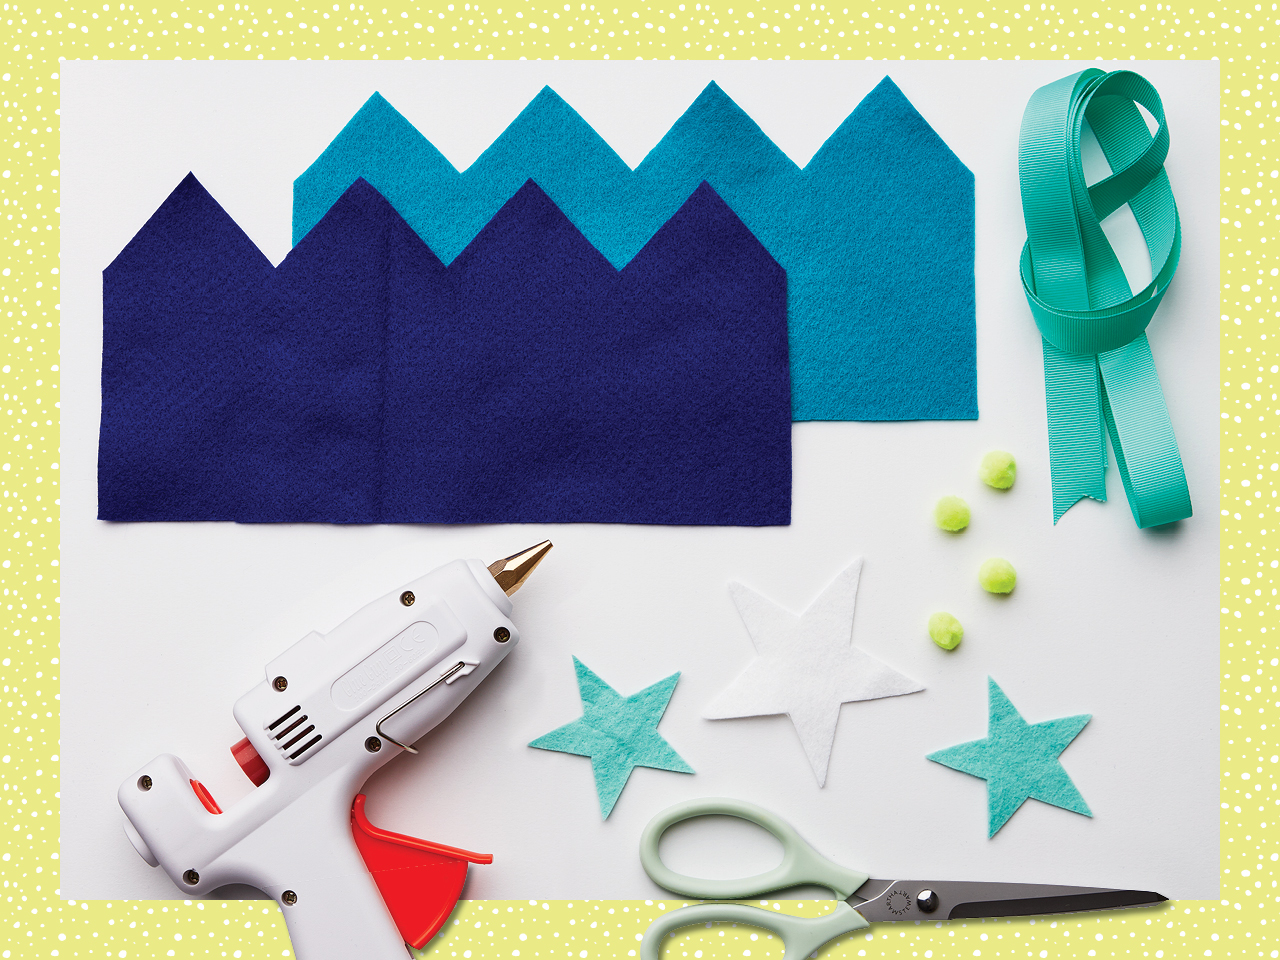 craft supplies for felt crown project